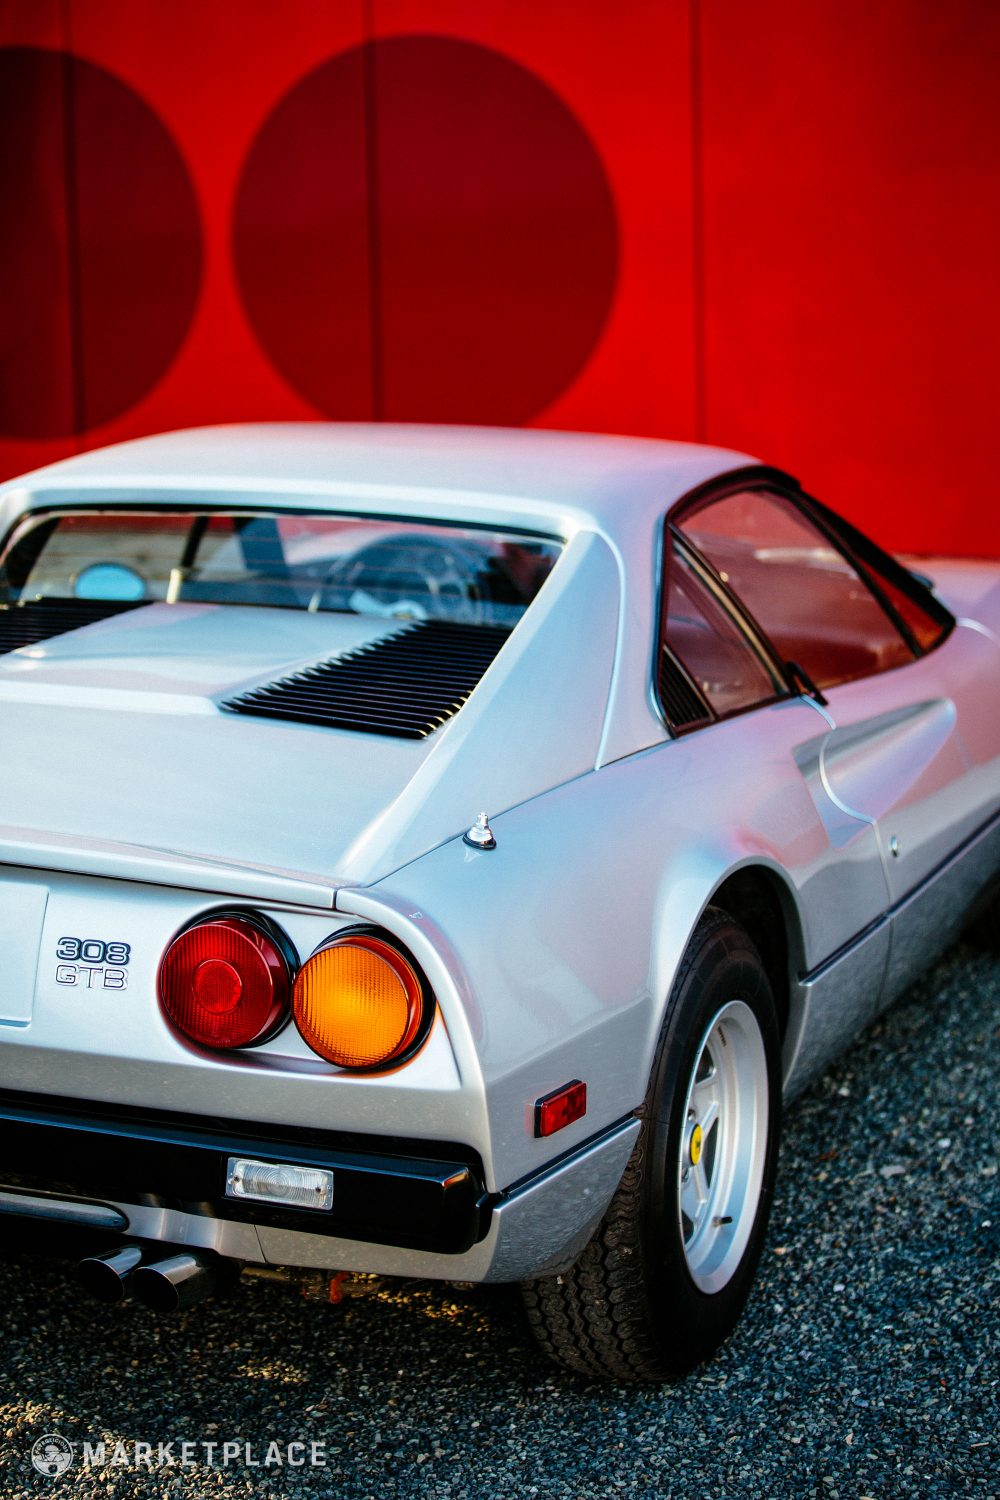 1977 Ferrari 308 Gtb W Audio Clips Petrolicious Fuse Box Wheels Classic 14 Campagnolo Five Spoke Were Repainted During The Cars Recent Work And Wear New Period Looking Vredestein Tires